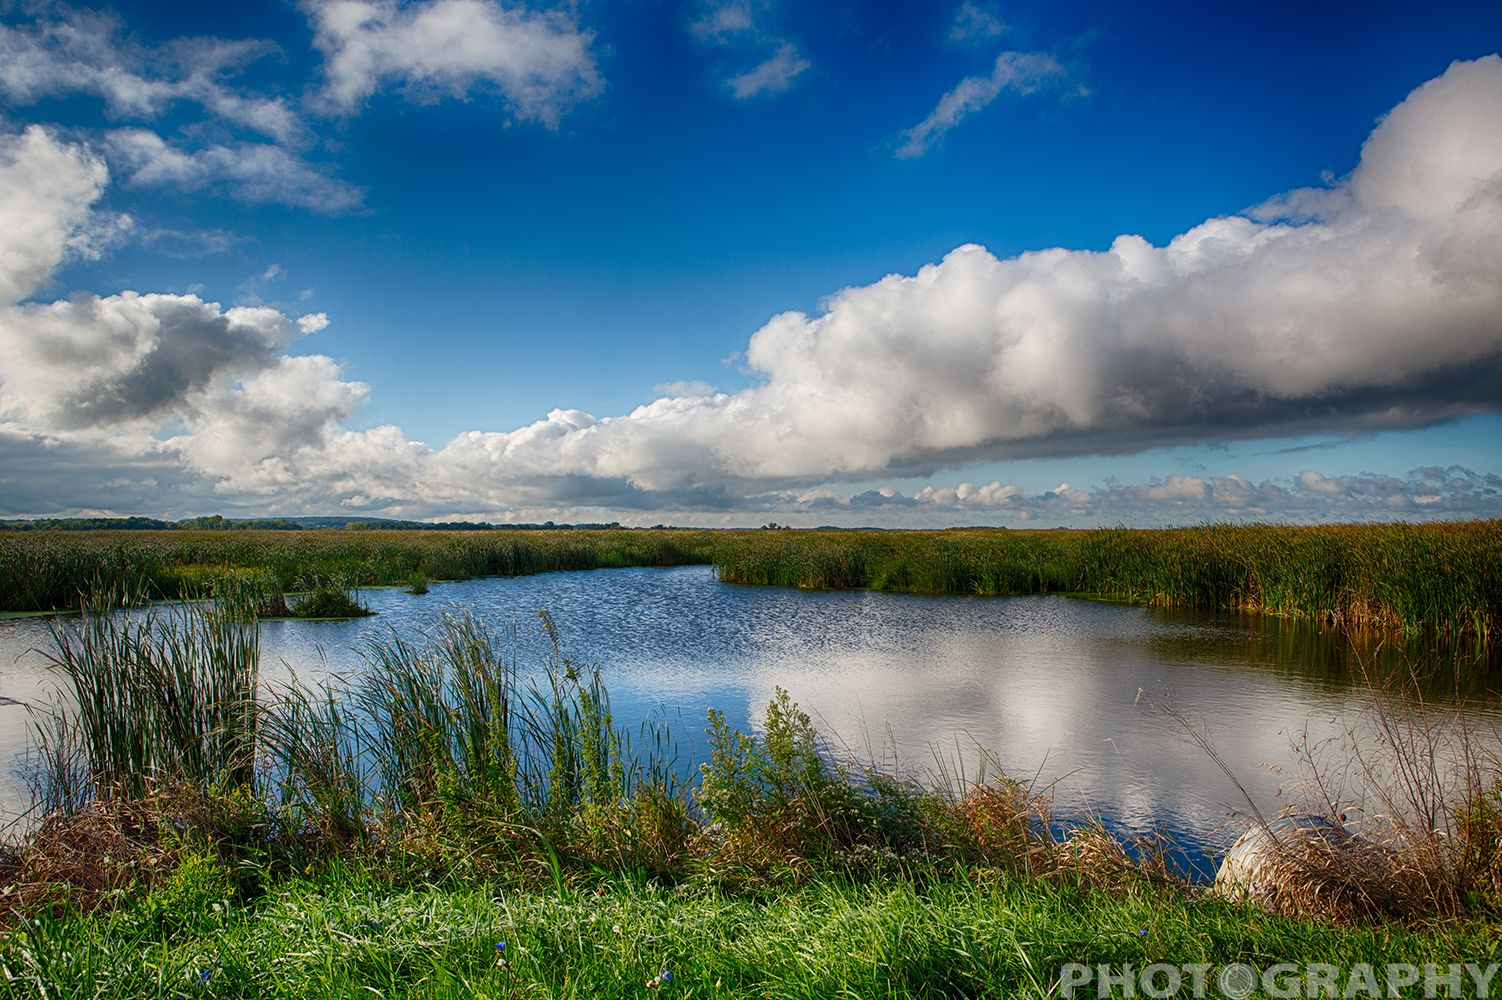 Horicon Marsh Wisconsin   Copyright Ricky L. Jones Photography 1995-2014 All rights reserved.